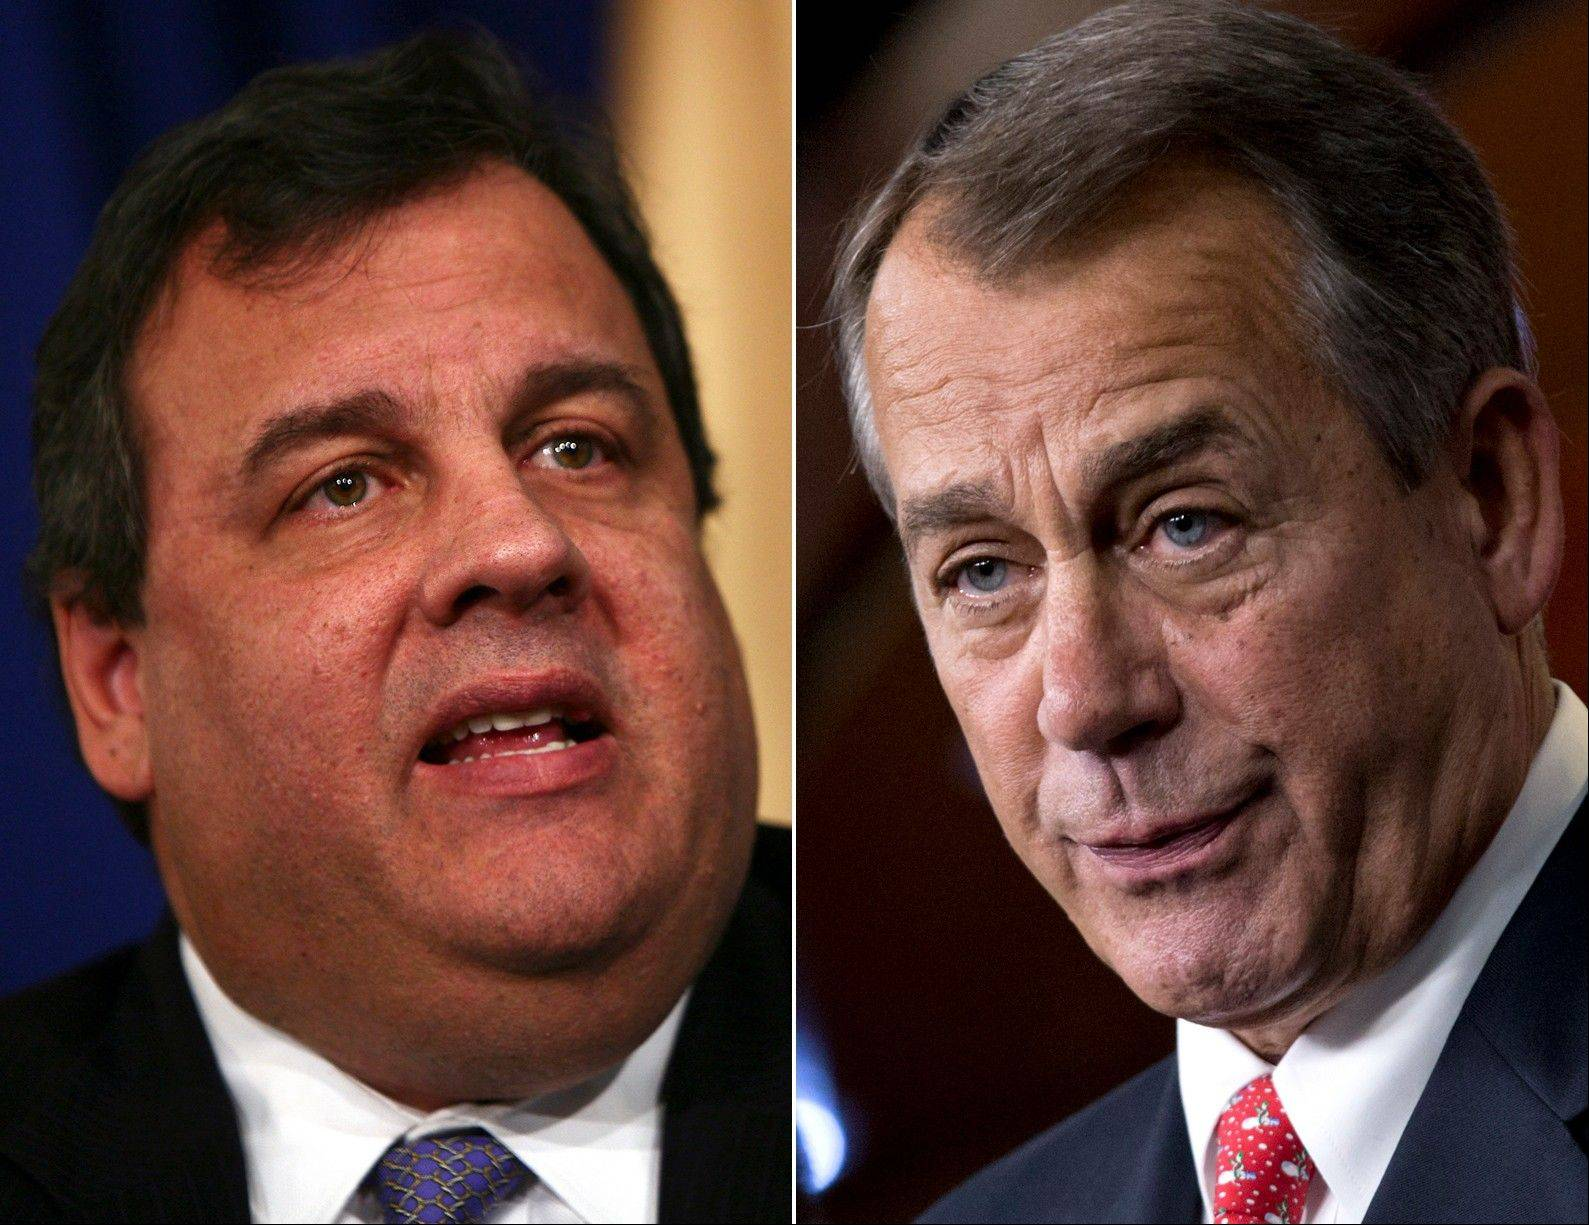 New Jersey Gov. Chris Christie, left, and U.S. Speaker of the House John Boehner, an Ohio Republican. Christie, a Republican who has praised President Barack Obama's handling of Superstorm Sandy, blasted Boehner Wednesday for delaying a vote for federal storm relief.